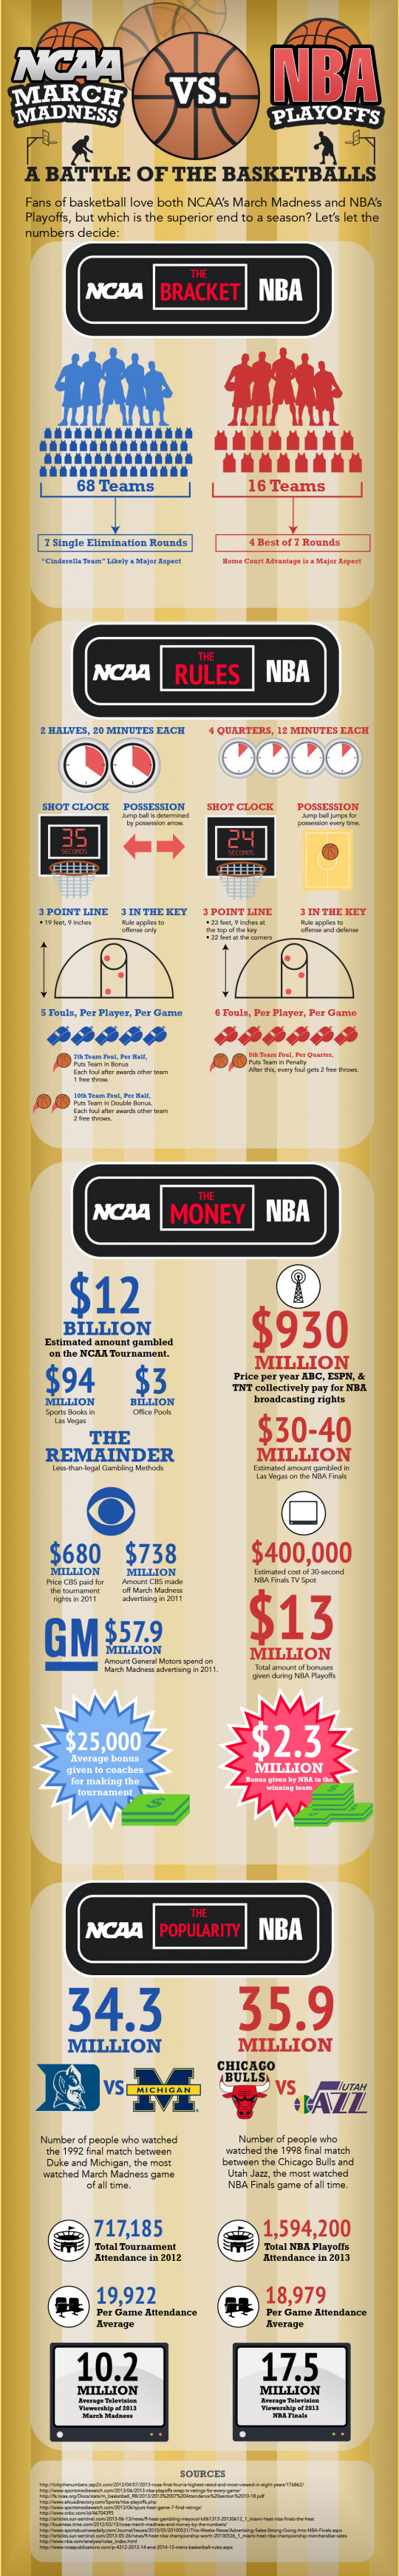 NCAA March Madness vs NBA Playoffs